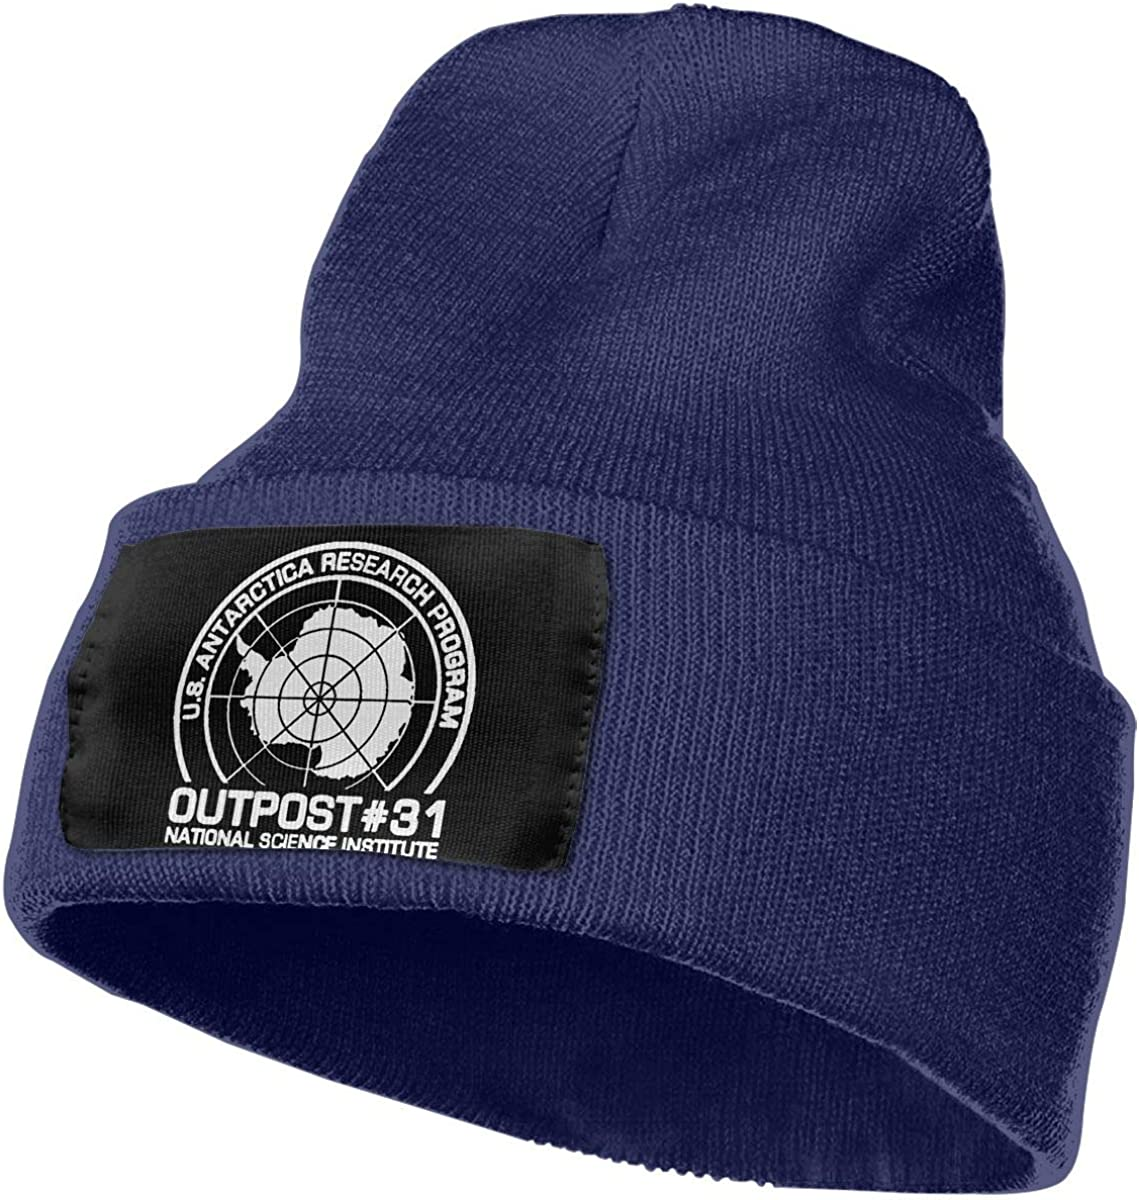 SLADDD1 Outpost 31 Antarctica Research Warm Winter Hat Knit Beanie Skull Cap Cuff Beanie Hat Winter Hats for Men /& Women